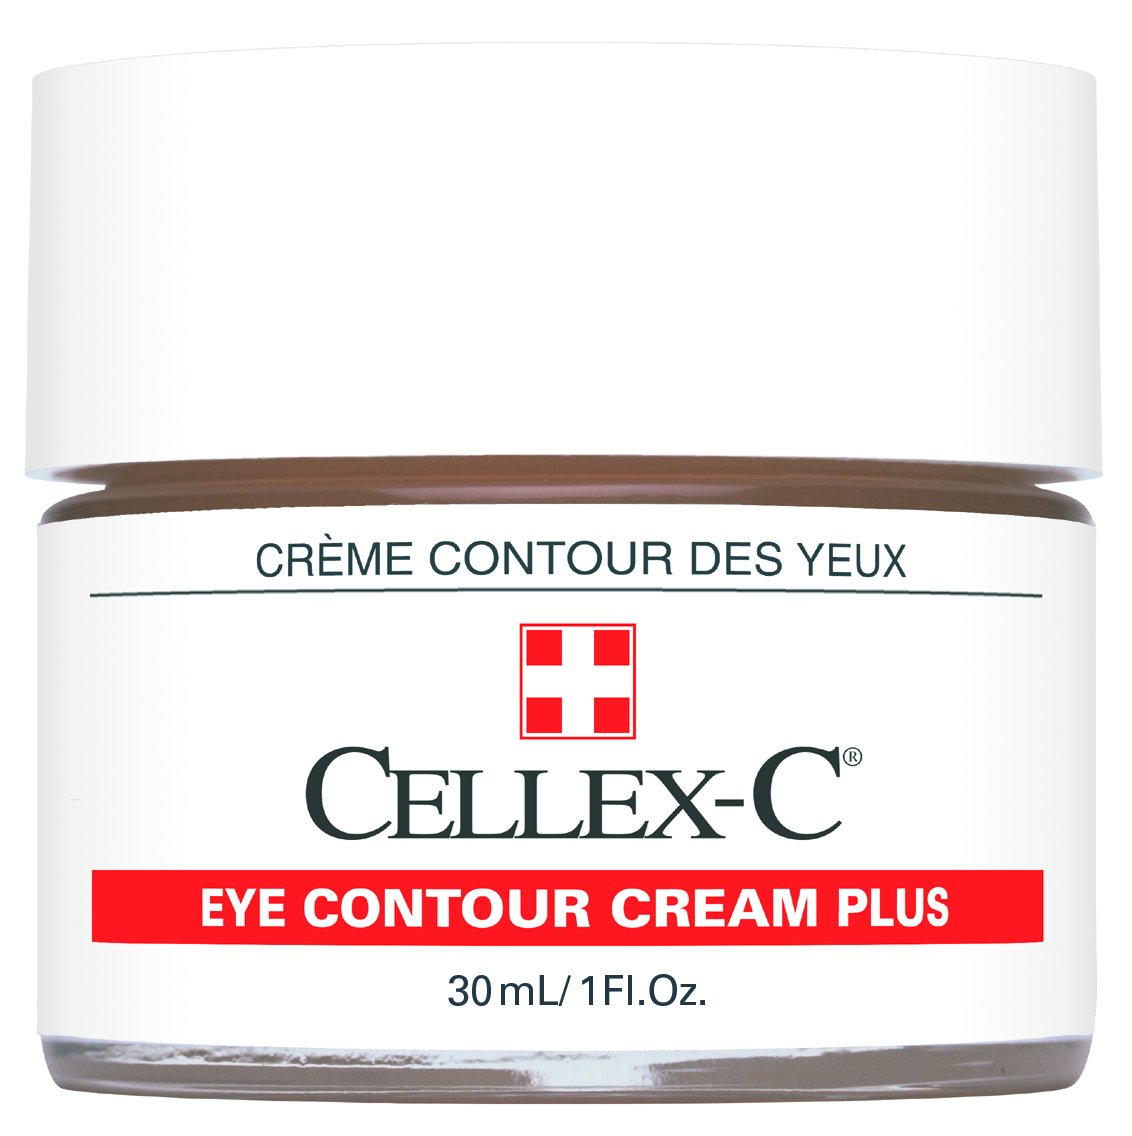 Cellex-C Eye Contour Cream Plus, 30 ml WHO-CC-213